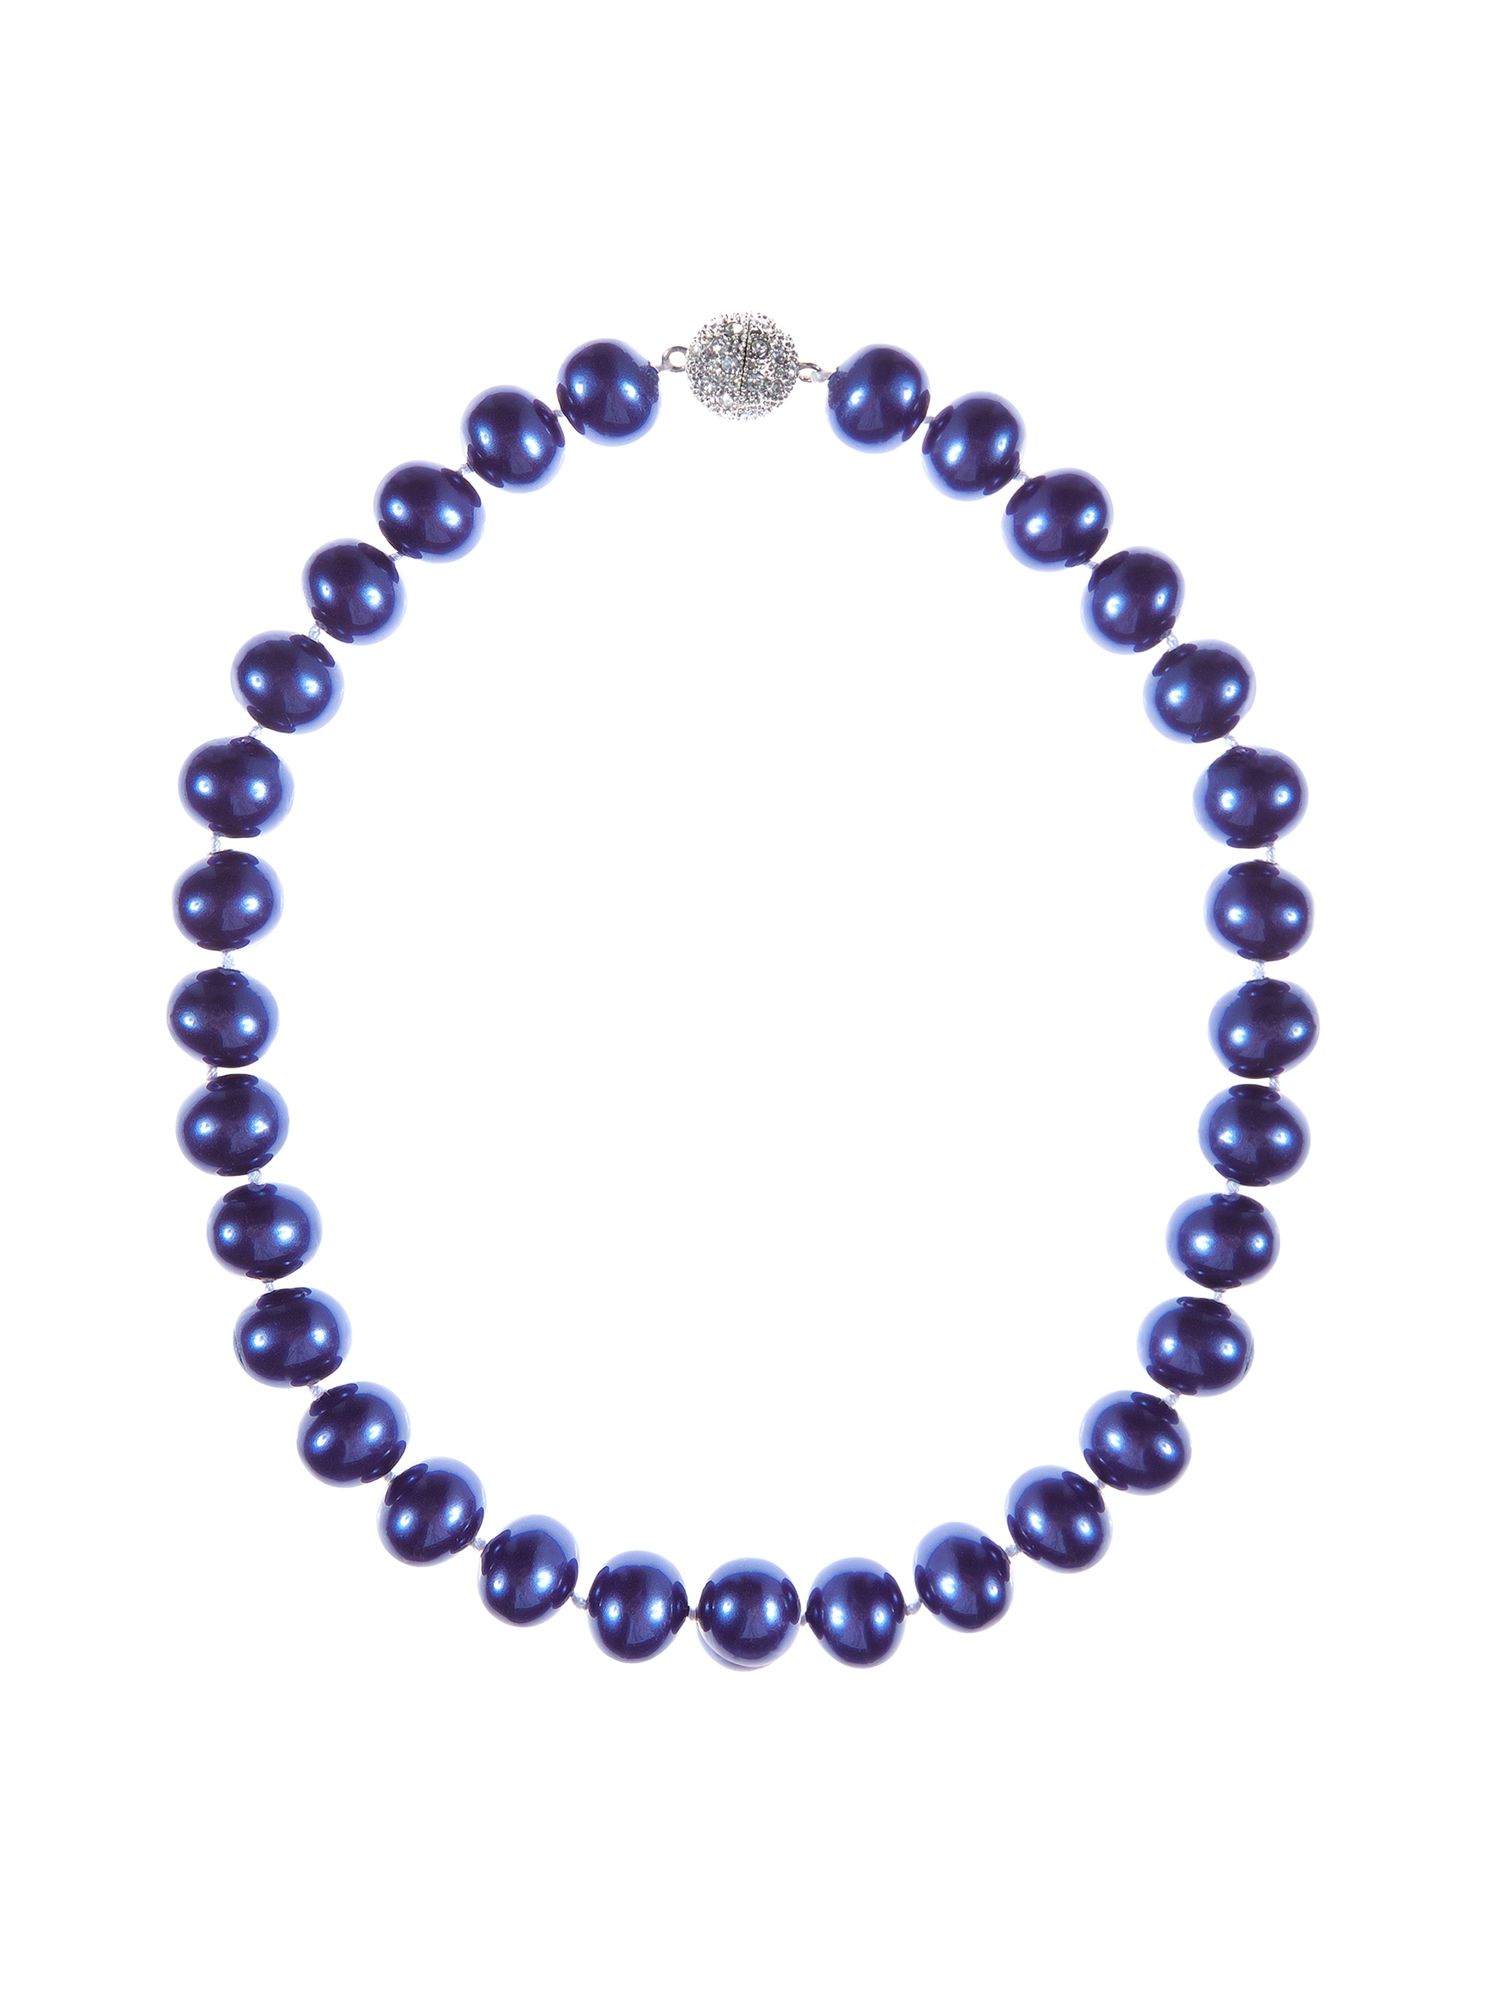 Damson pearl necklace